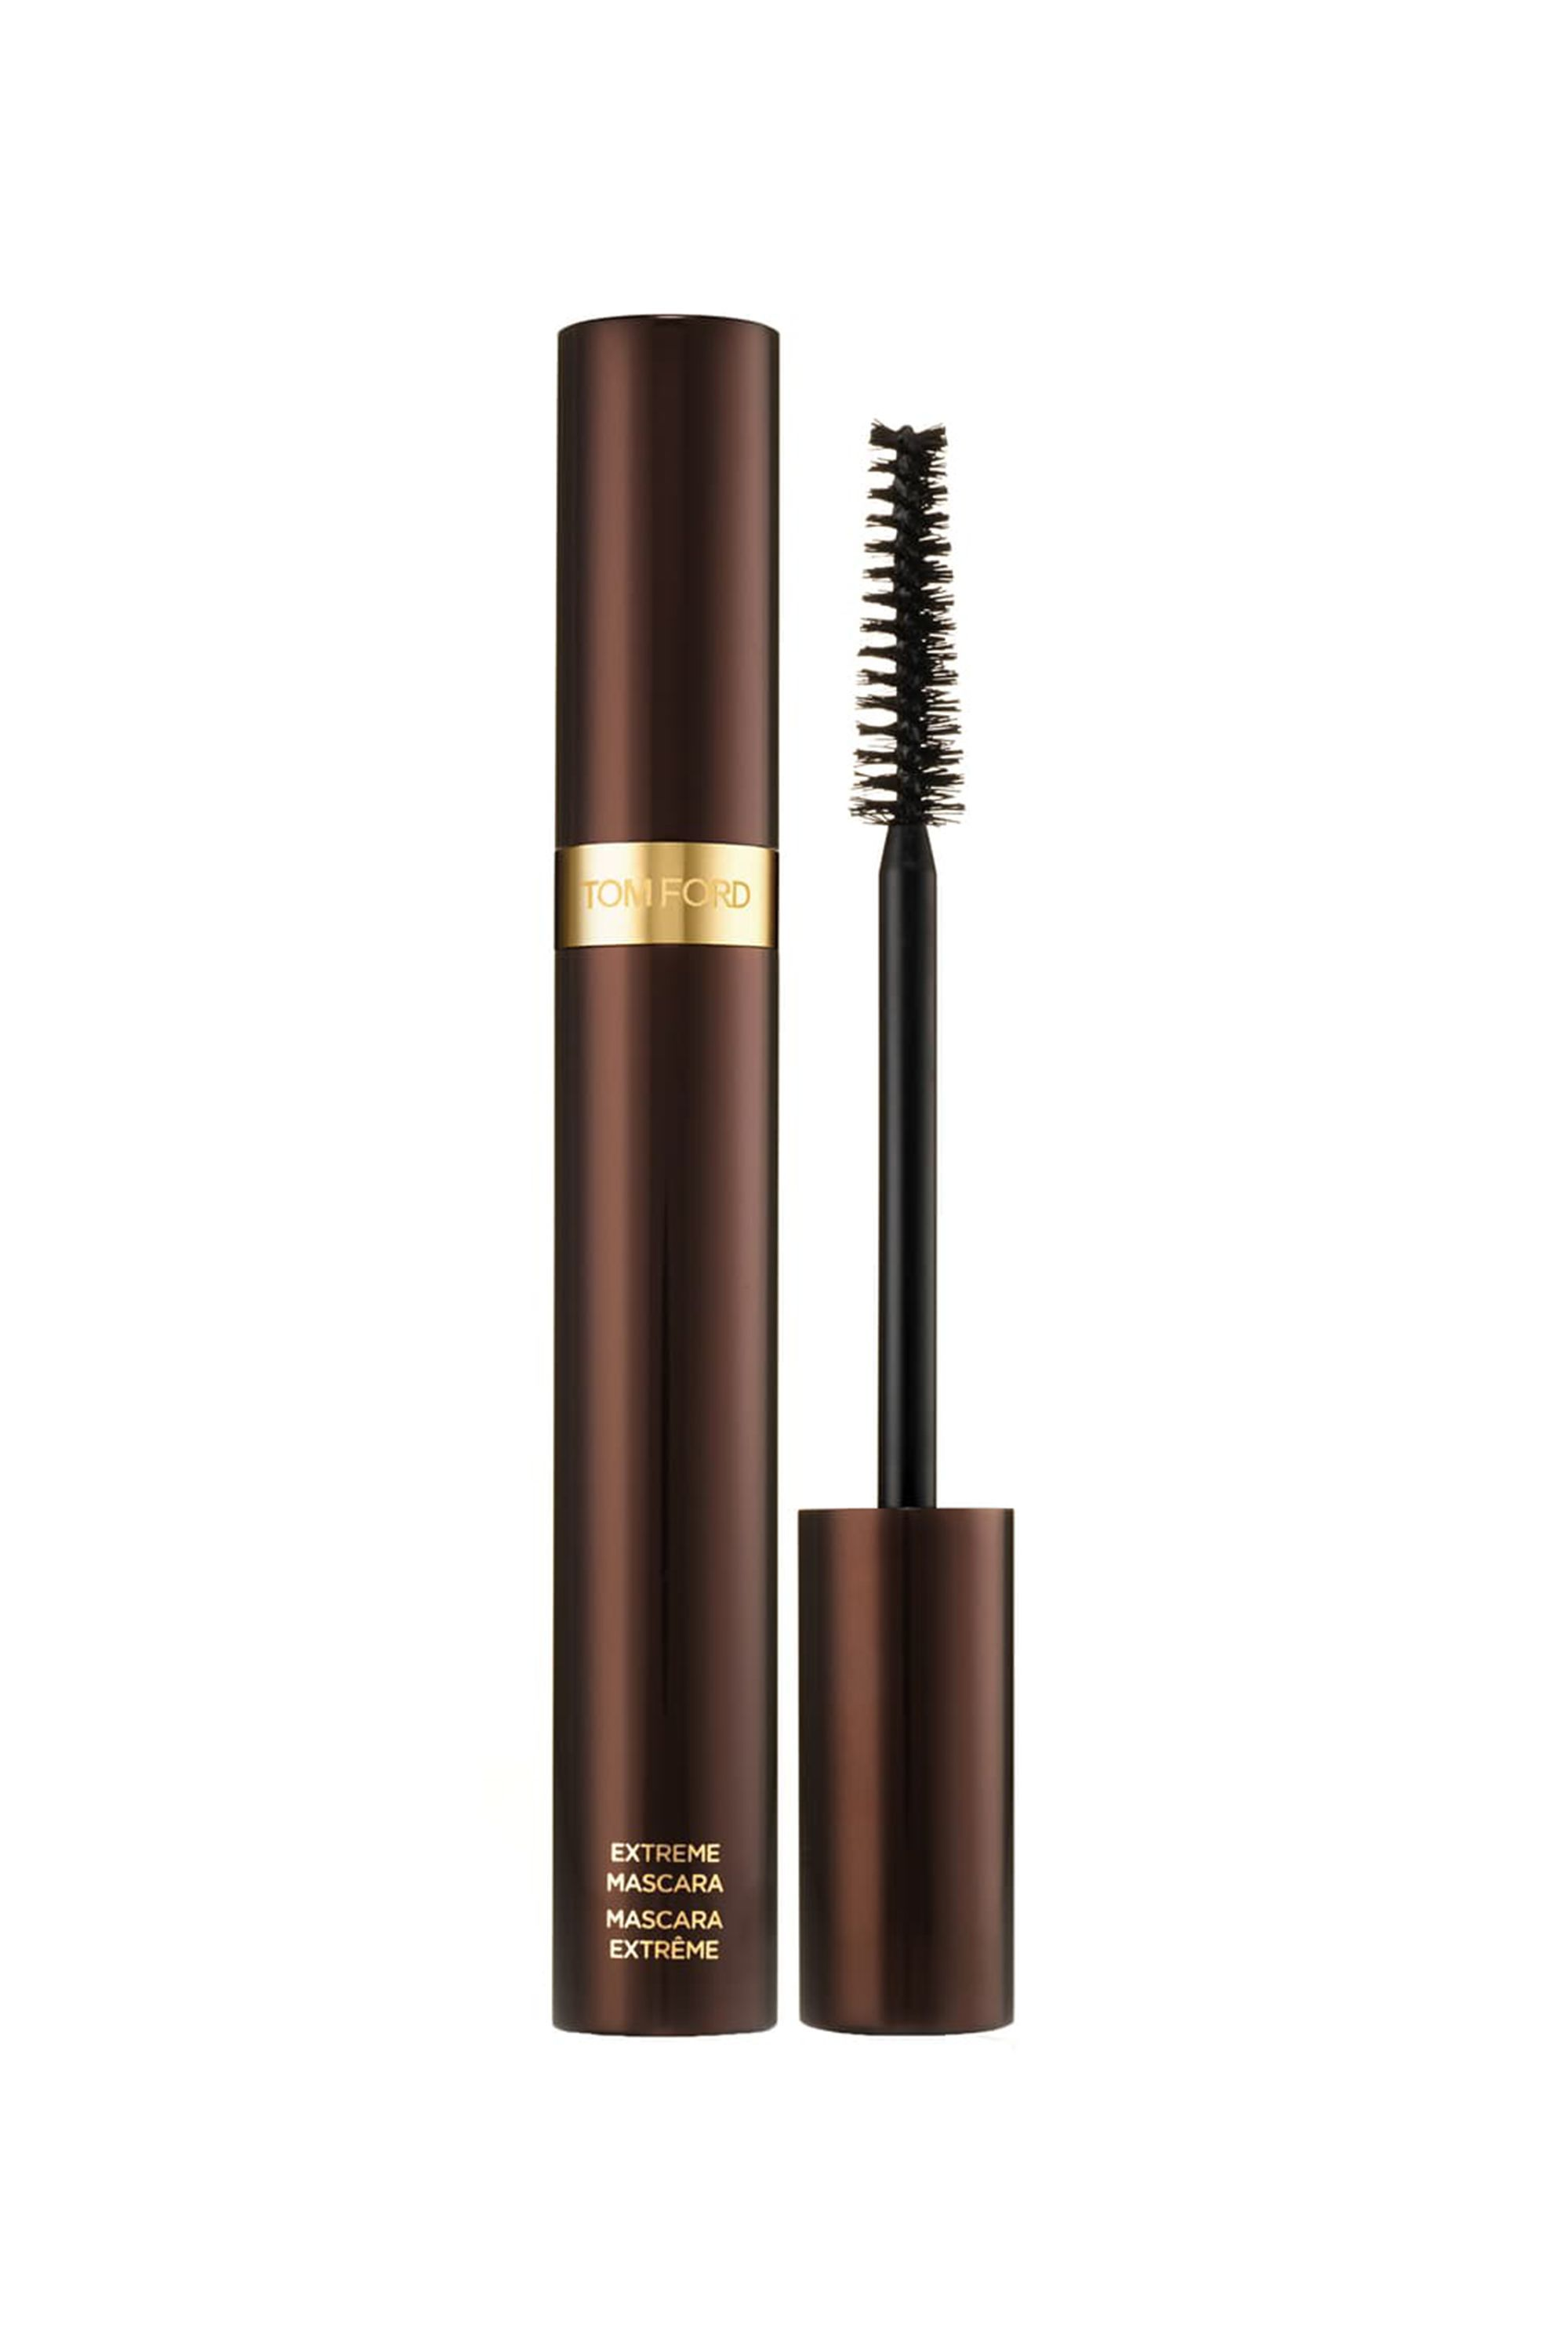 e2b1de72488 10 Best Mascaras in 2019 - Top Mascara Reviews for Volume and Length -  ELLE.com